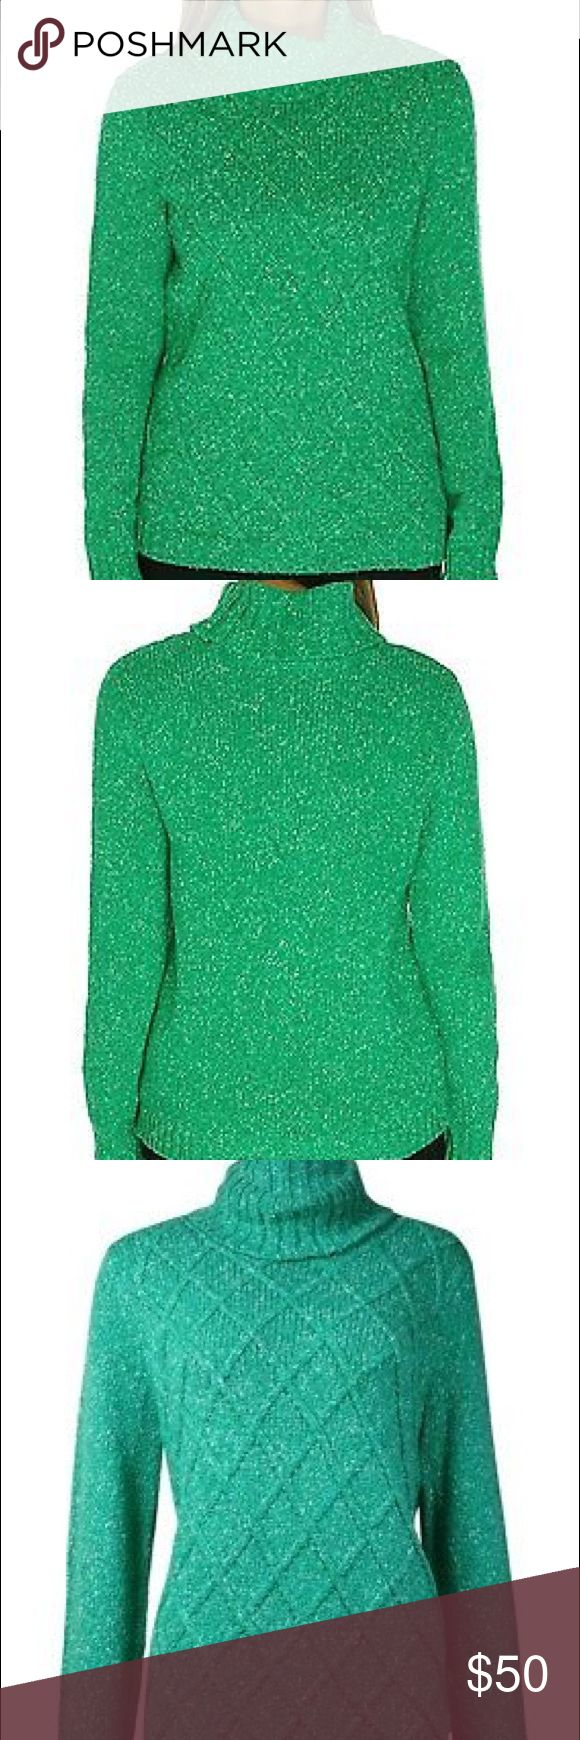 Anne Klein Green Cable Knit Sweater 61% Cotton/39% Acrylic Imported Pullover turtleneck sweater featuring cable-knit front, Rib-knit collar and cuffs, speckled green with a gorgeous woven pattern, very nice weight for this winter season! Size large & NWT! Anne Klein Sweaters Cowl & Turtlenecks